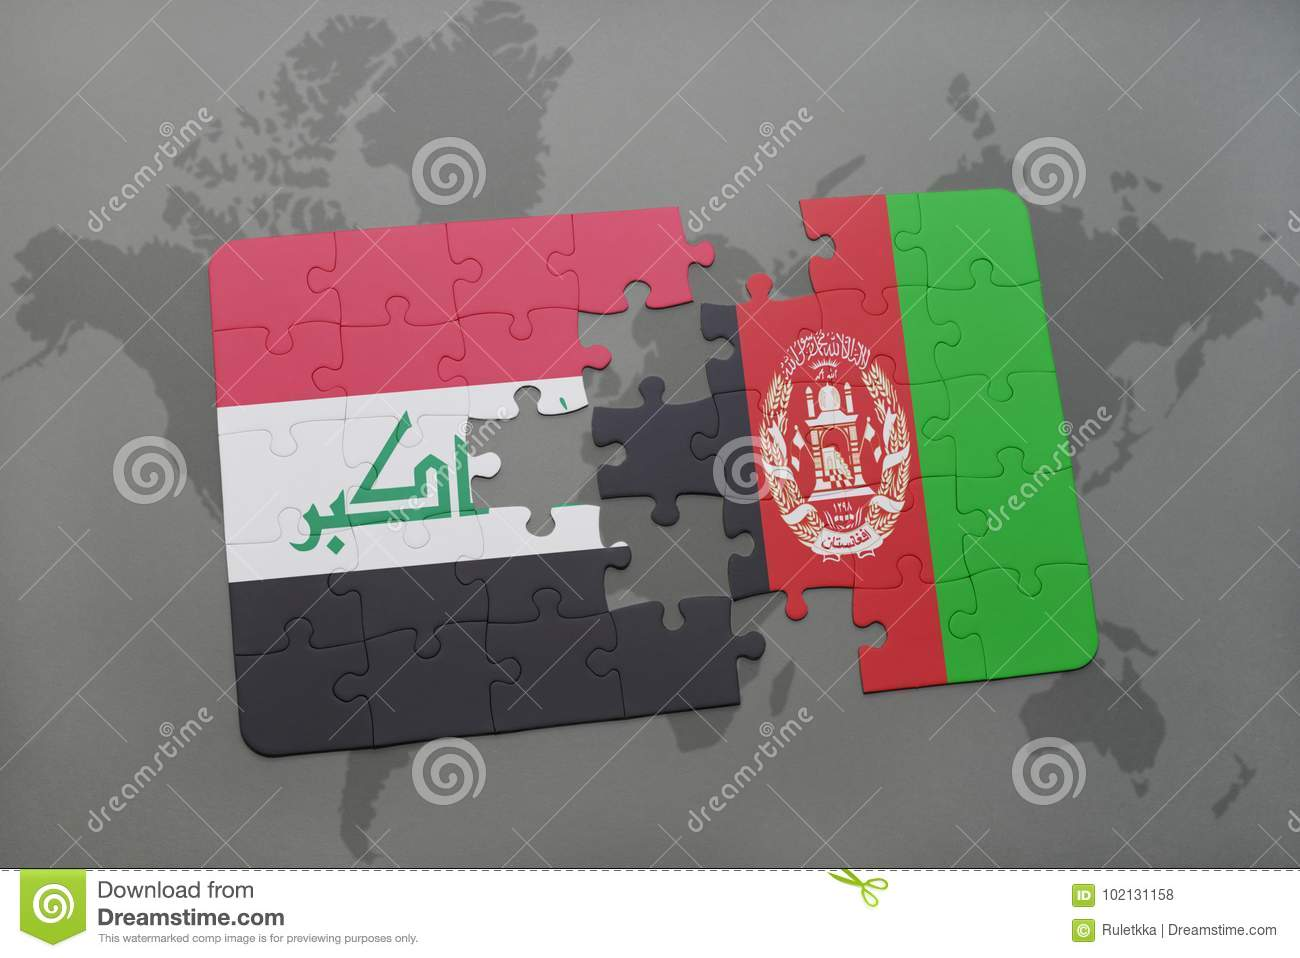 Puzzle with the national flag of iraq and afghanistan on a world map download puzzle with the national flag of iraq and afghanistan on a world map background gumiabroncs Image collections